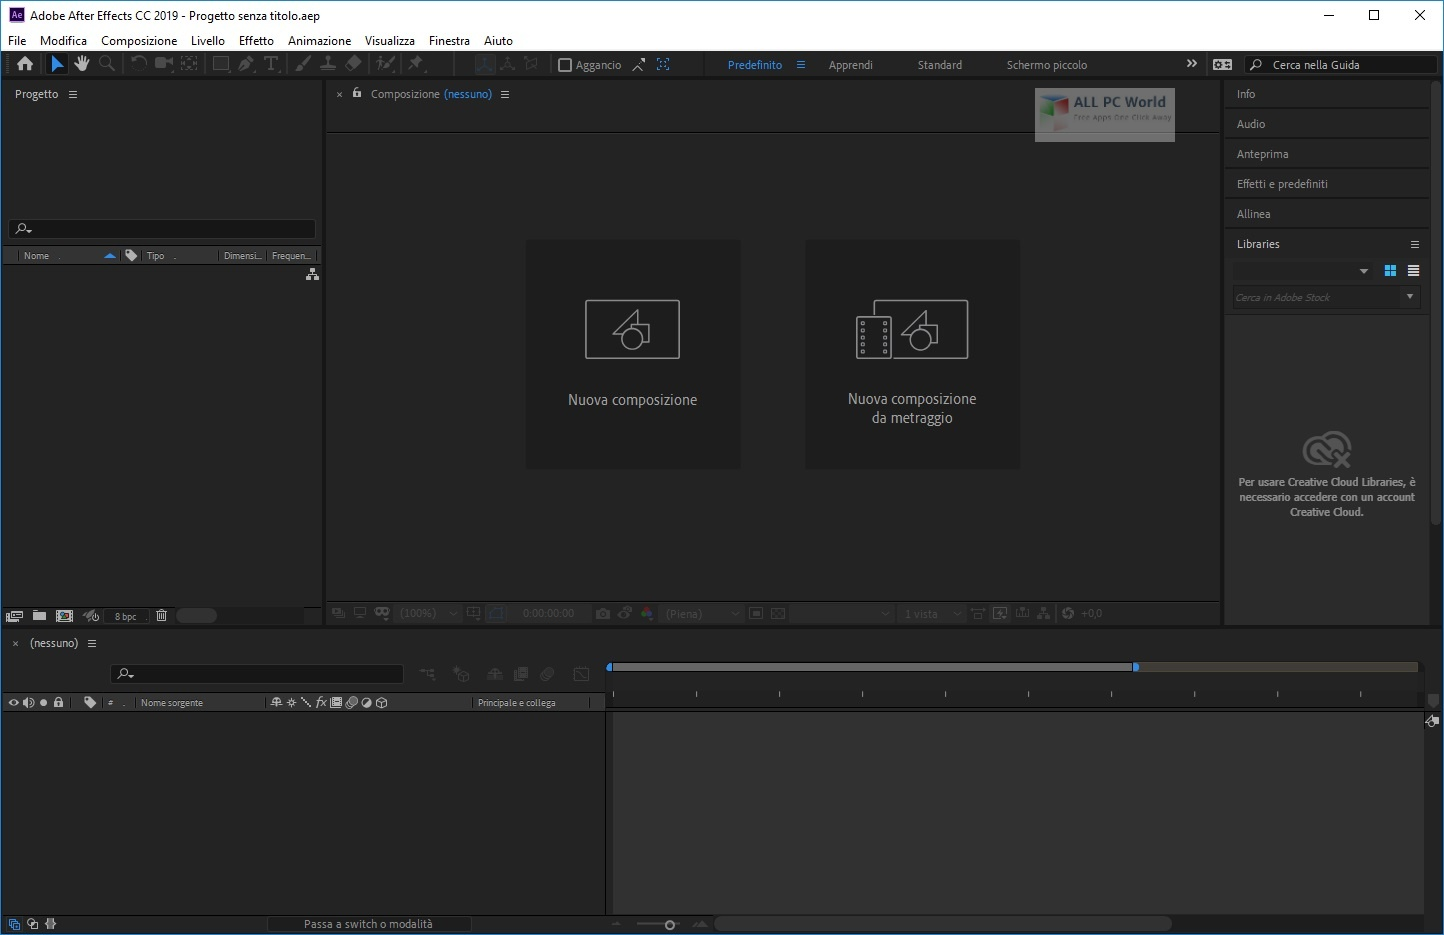 Adobe After Effects CC 2020 v17.0.5